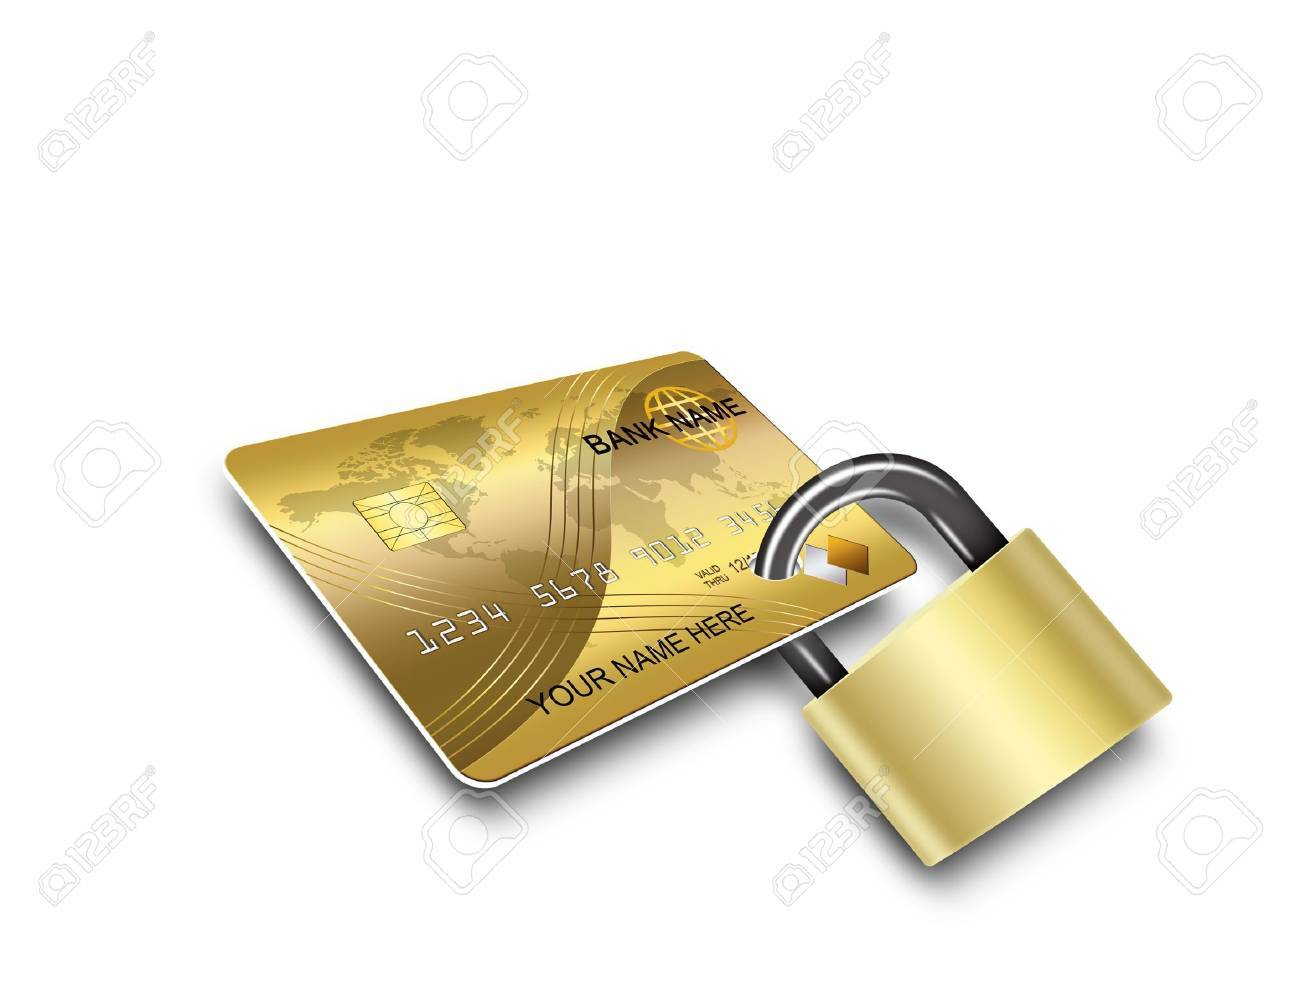 cards security Stock Photo - 10031129